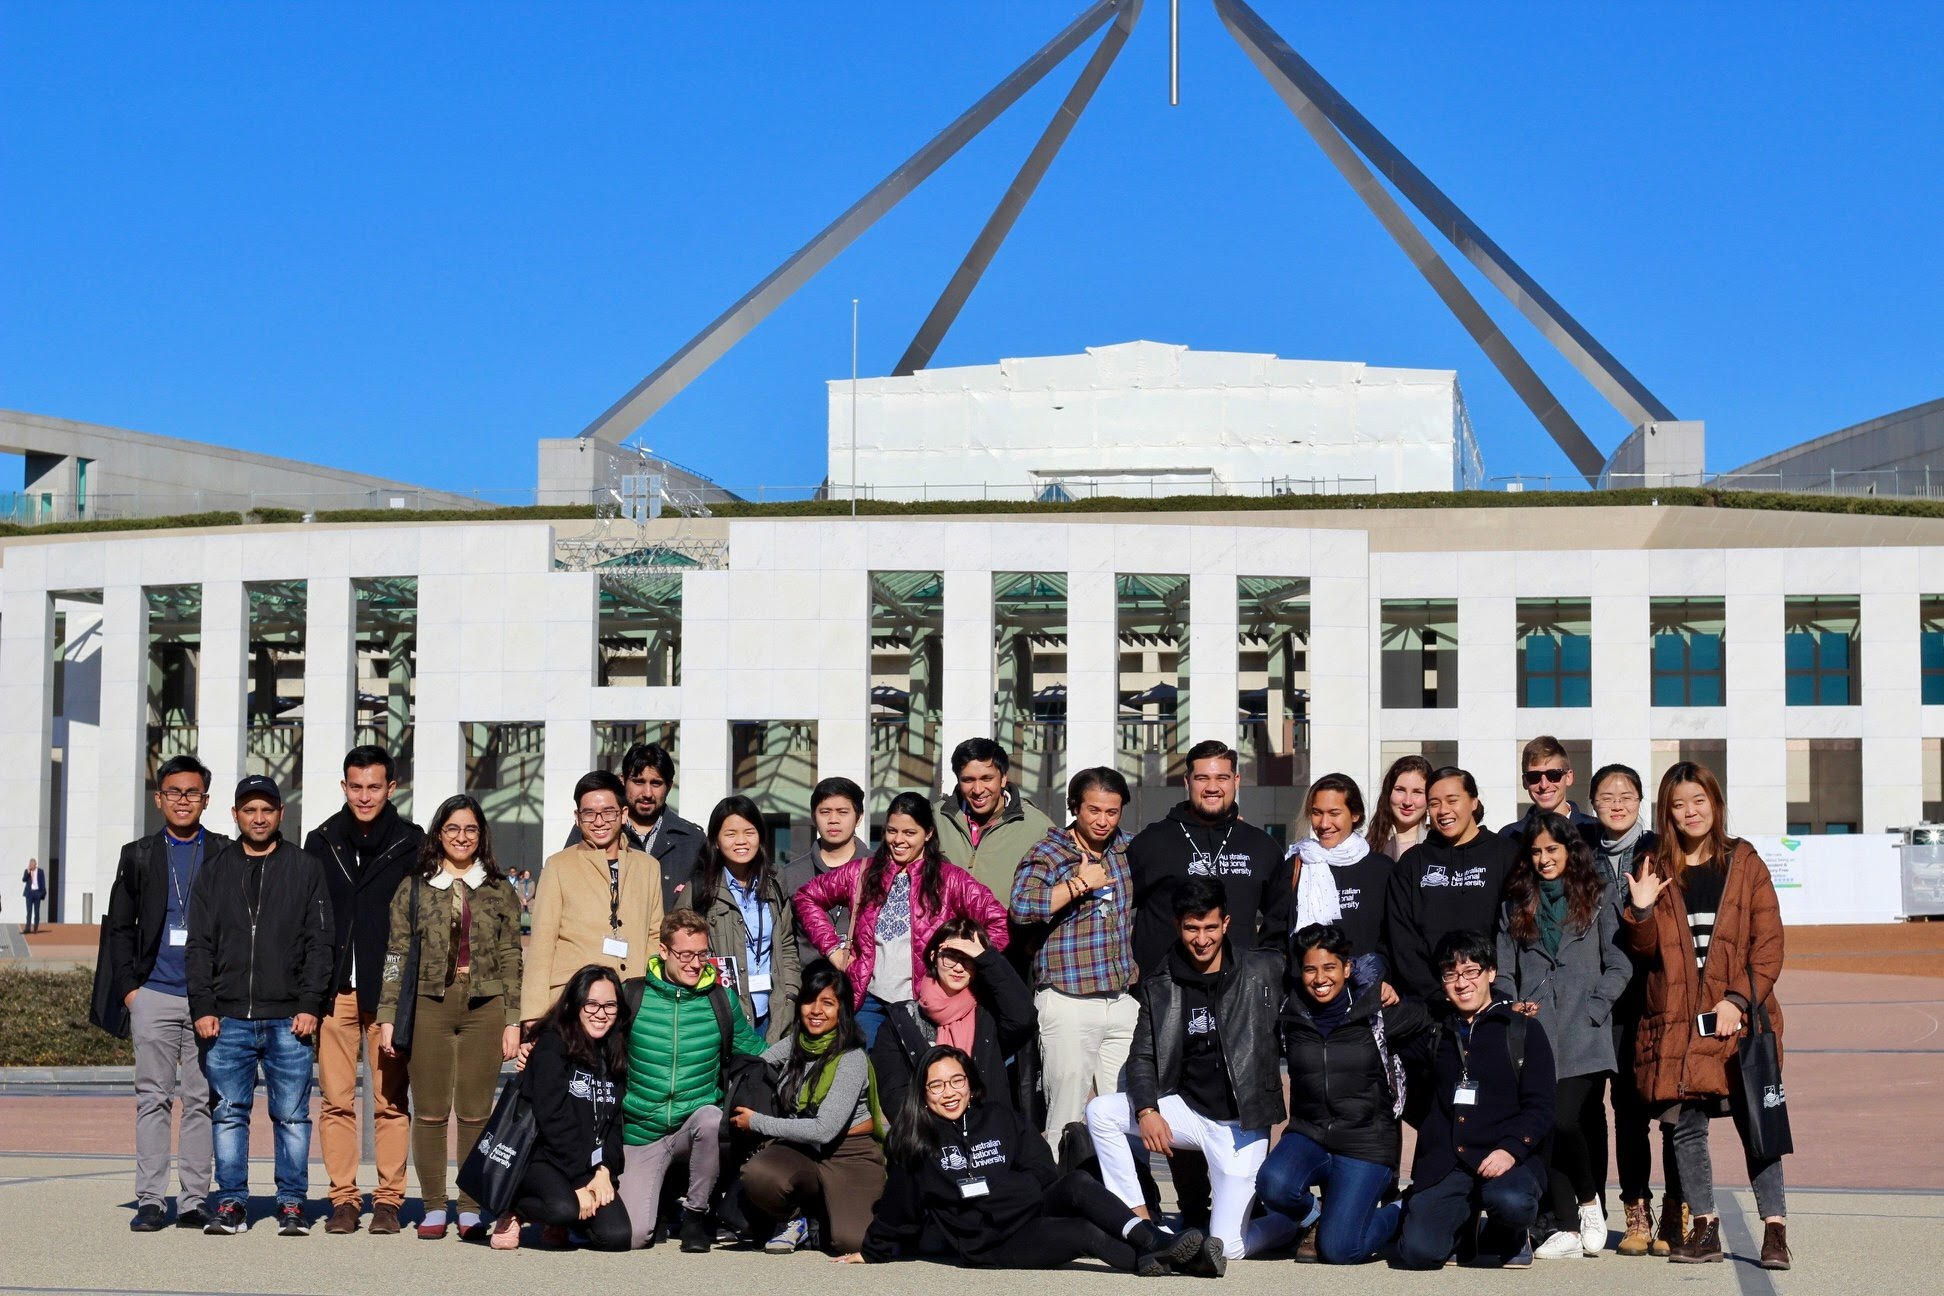 Toli Reupena and Robati Harrison (Pasifika students from the University of Queensland) attending the ANU Asia Pacific Week in Canberra, May 2018. MANA were privileged to support their attendance and know that the experiences and insights gained will be invaluable in these two special students' lives.